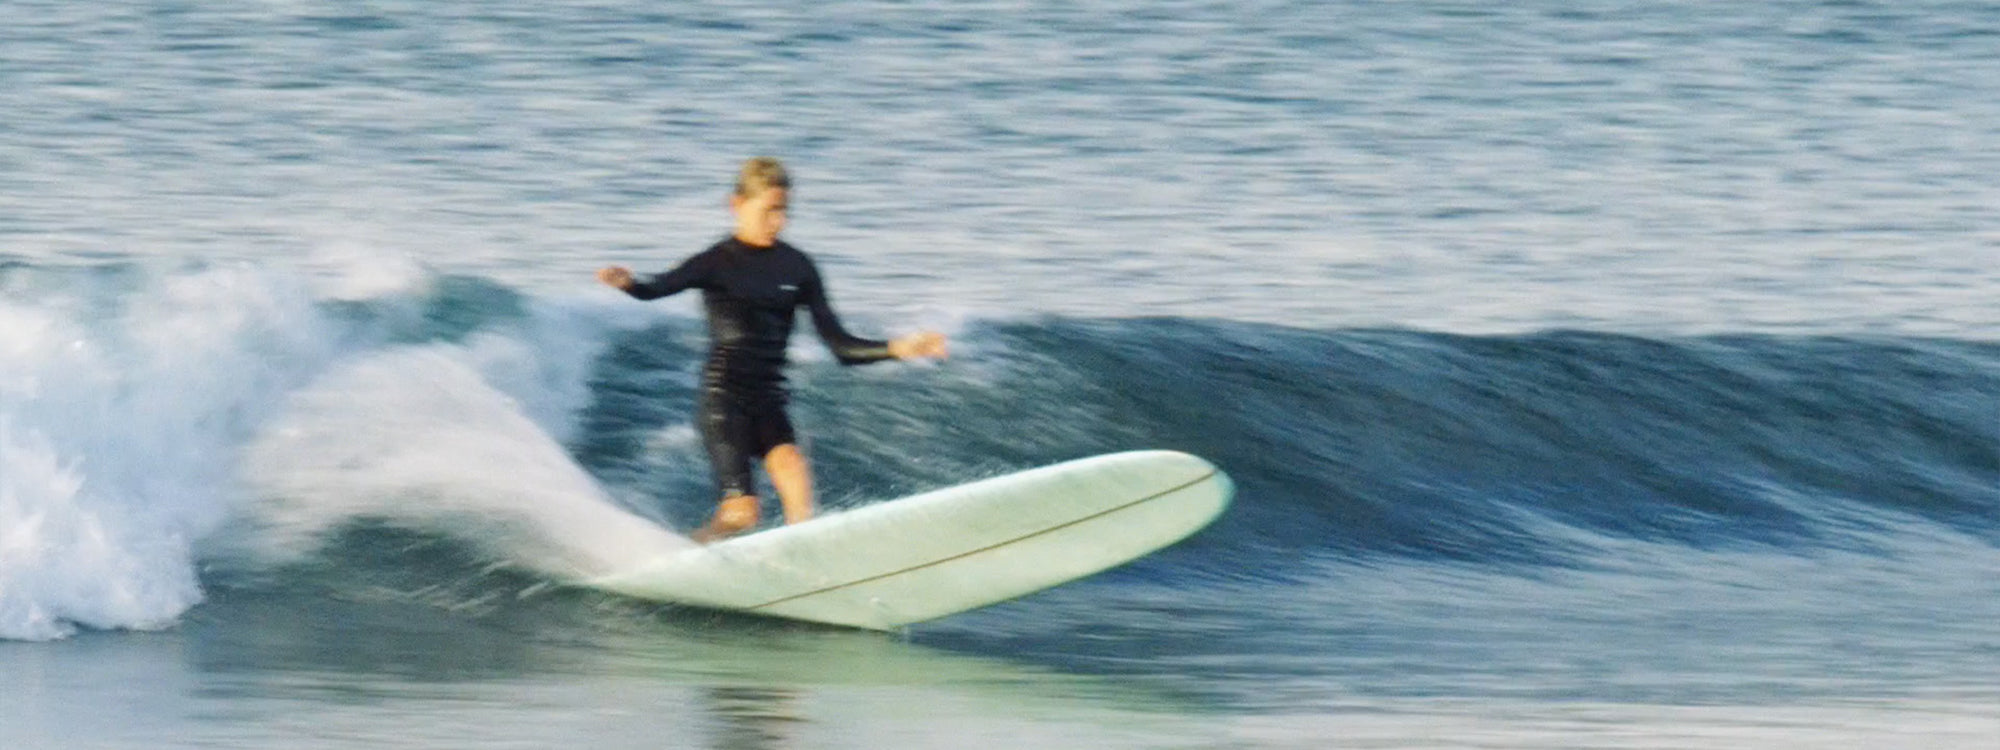 Bing Surf Video Series by Victor Melchor - Part 2 Featuring Tommy Coleman